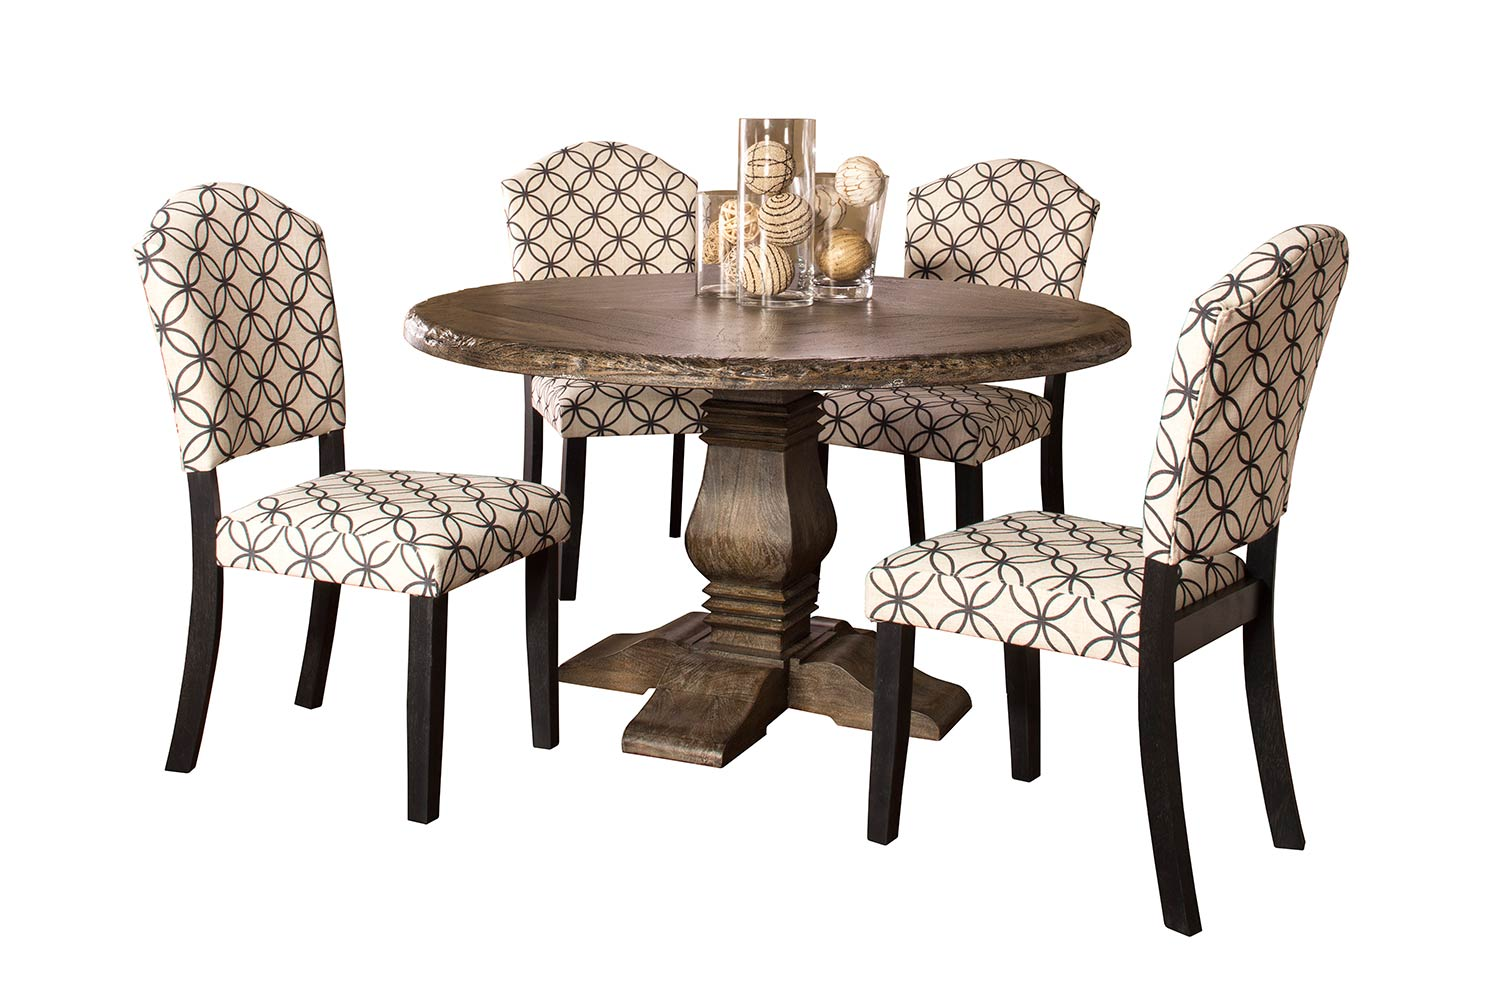 Hillsdale Lorient 5 PC Round Dining Set with Parsons Chairs - Washed Charcoal Gray